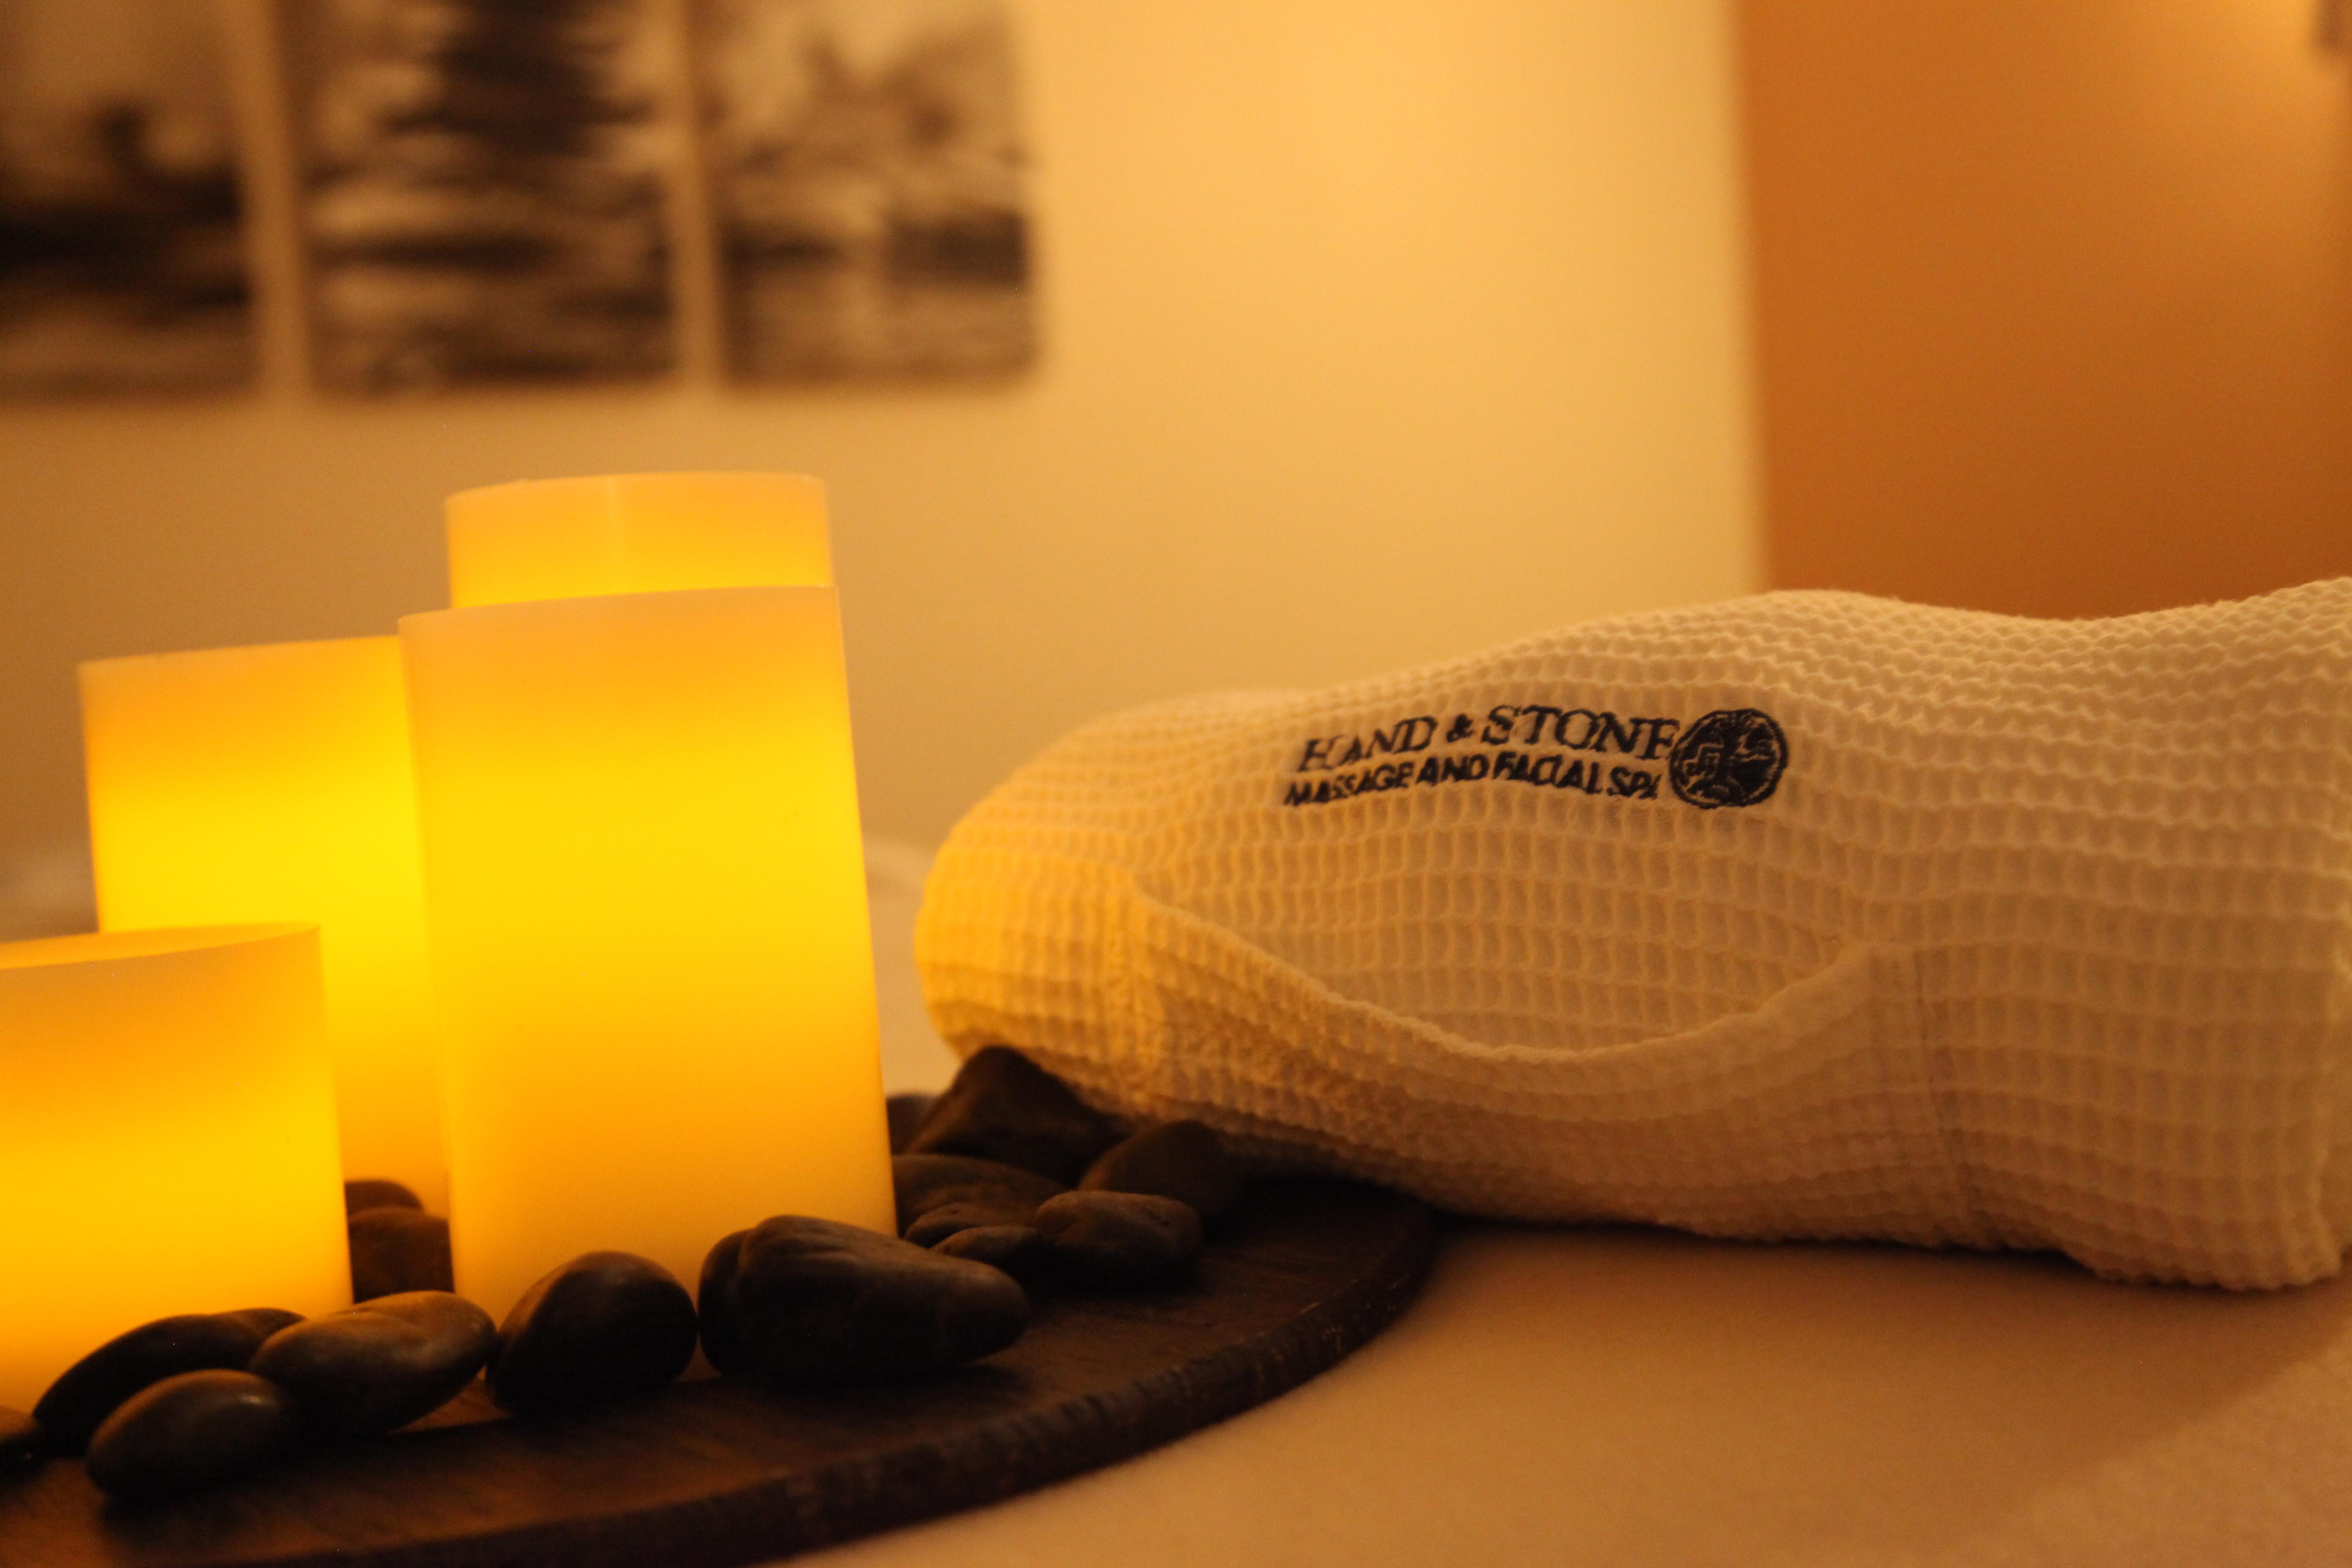 Hand & Stone Massage and Facial Spa in Somerset, NJ ...